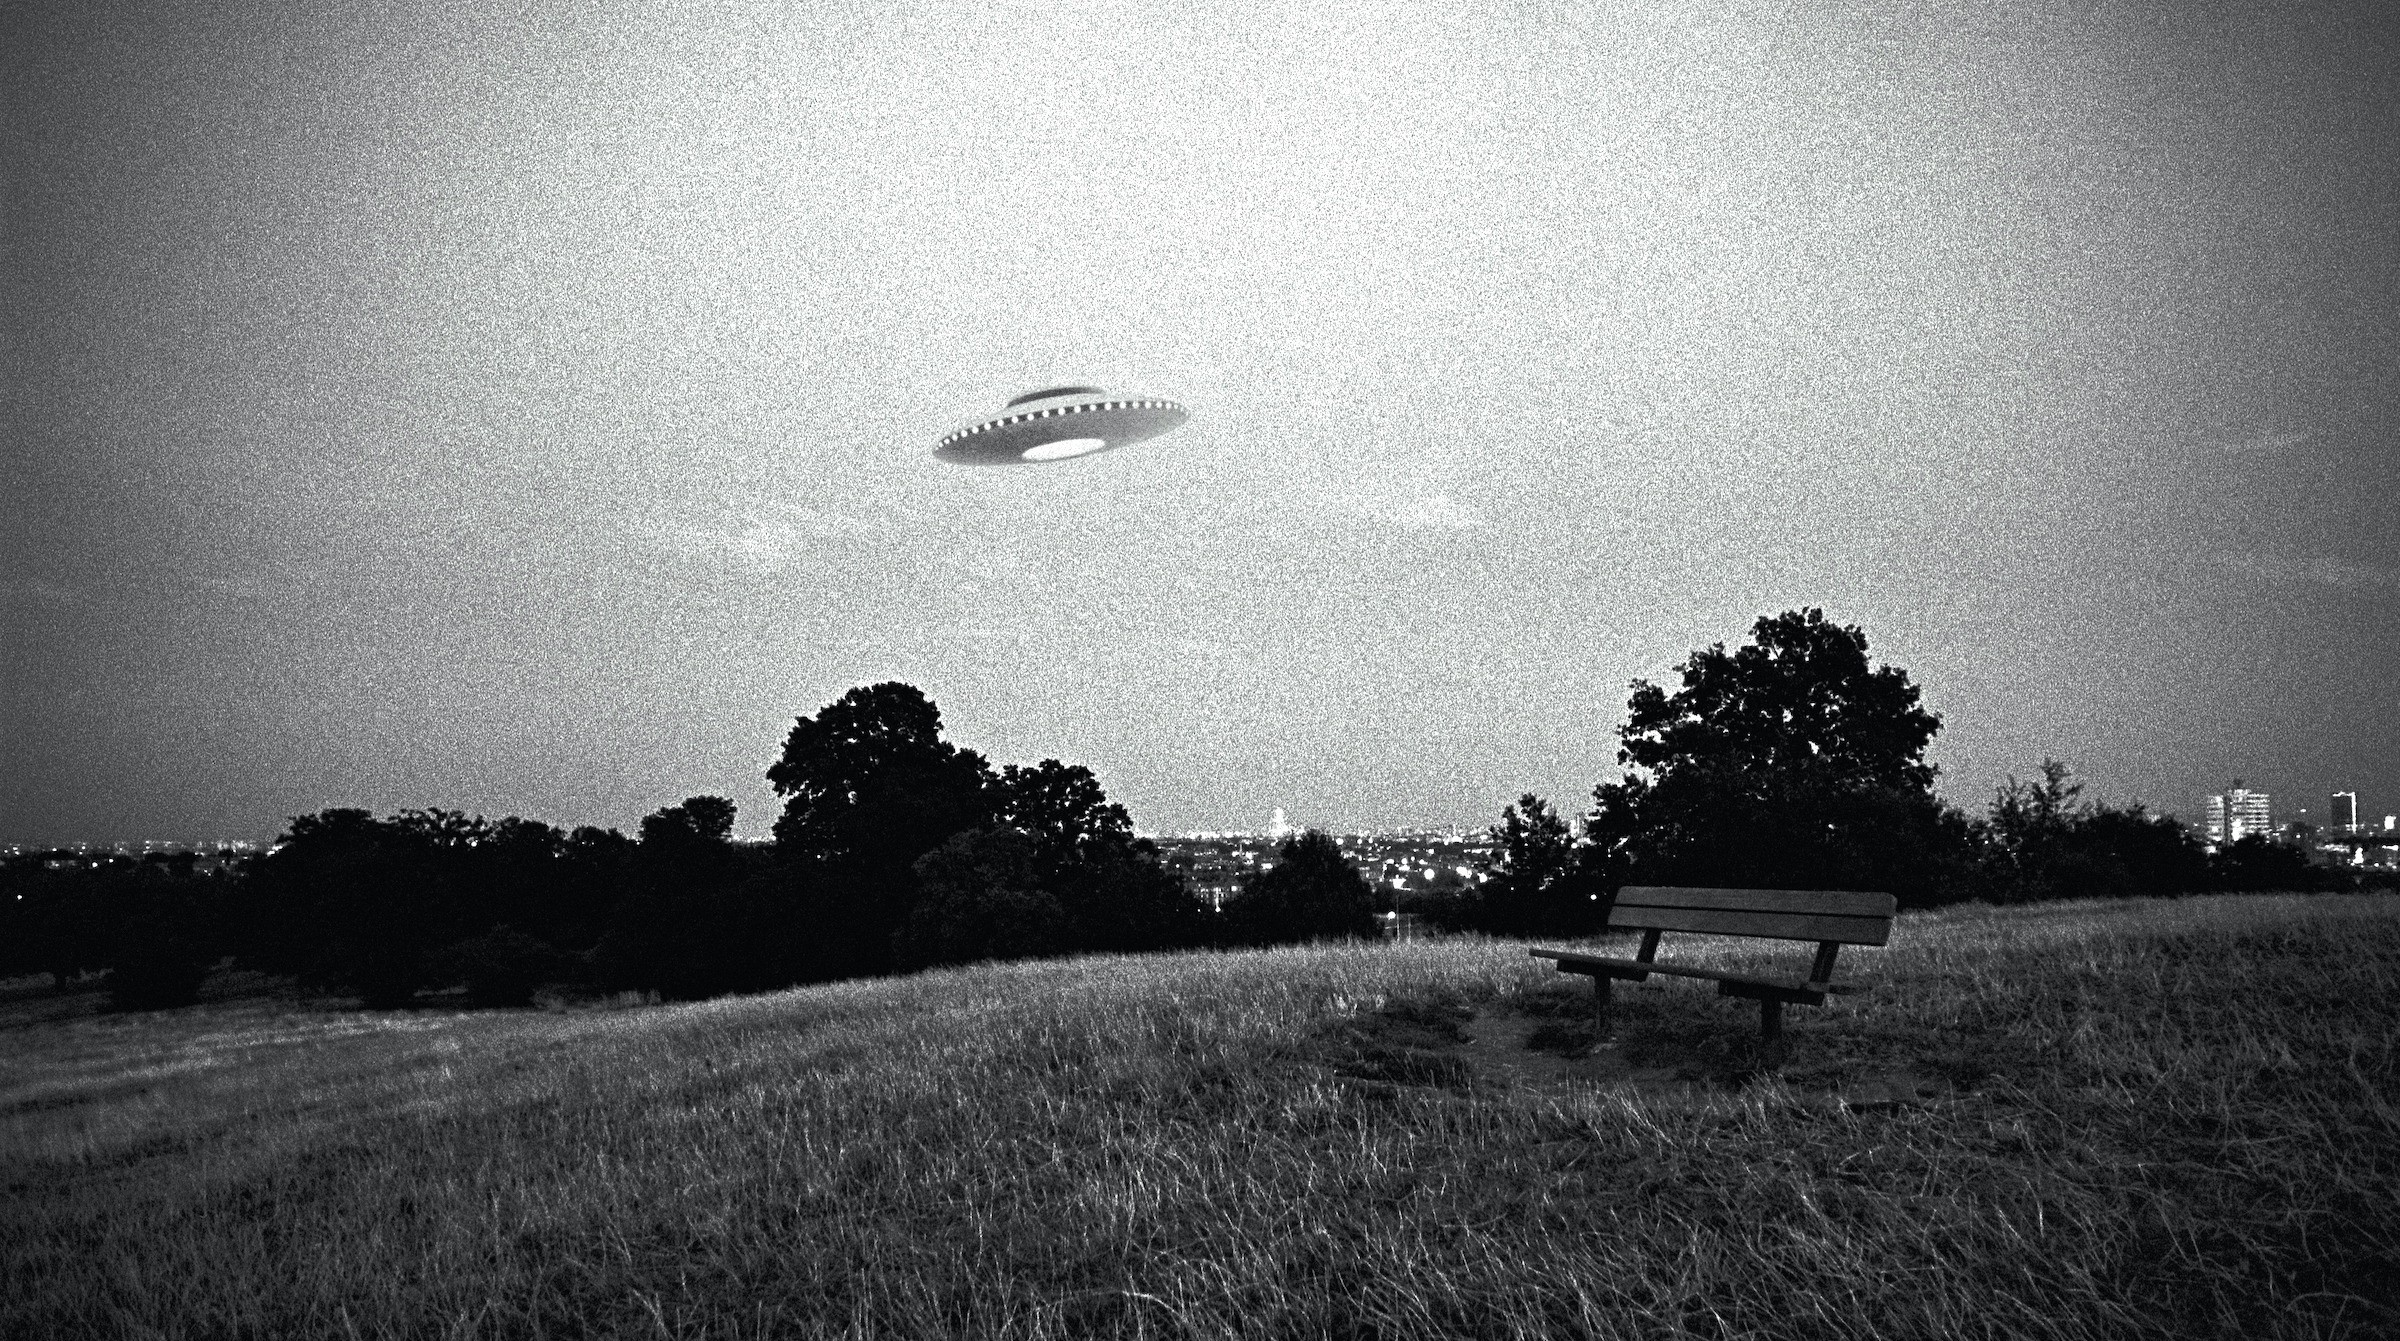 Grainy black-and-white photo of a UFO flying over a park bench overlooking an urban scene in the distance.